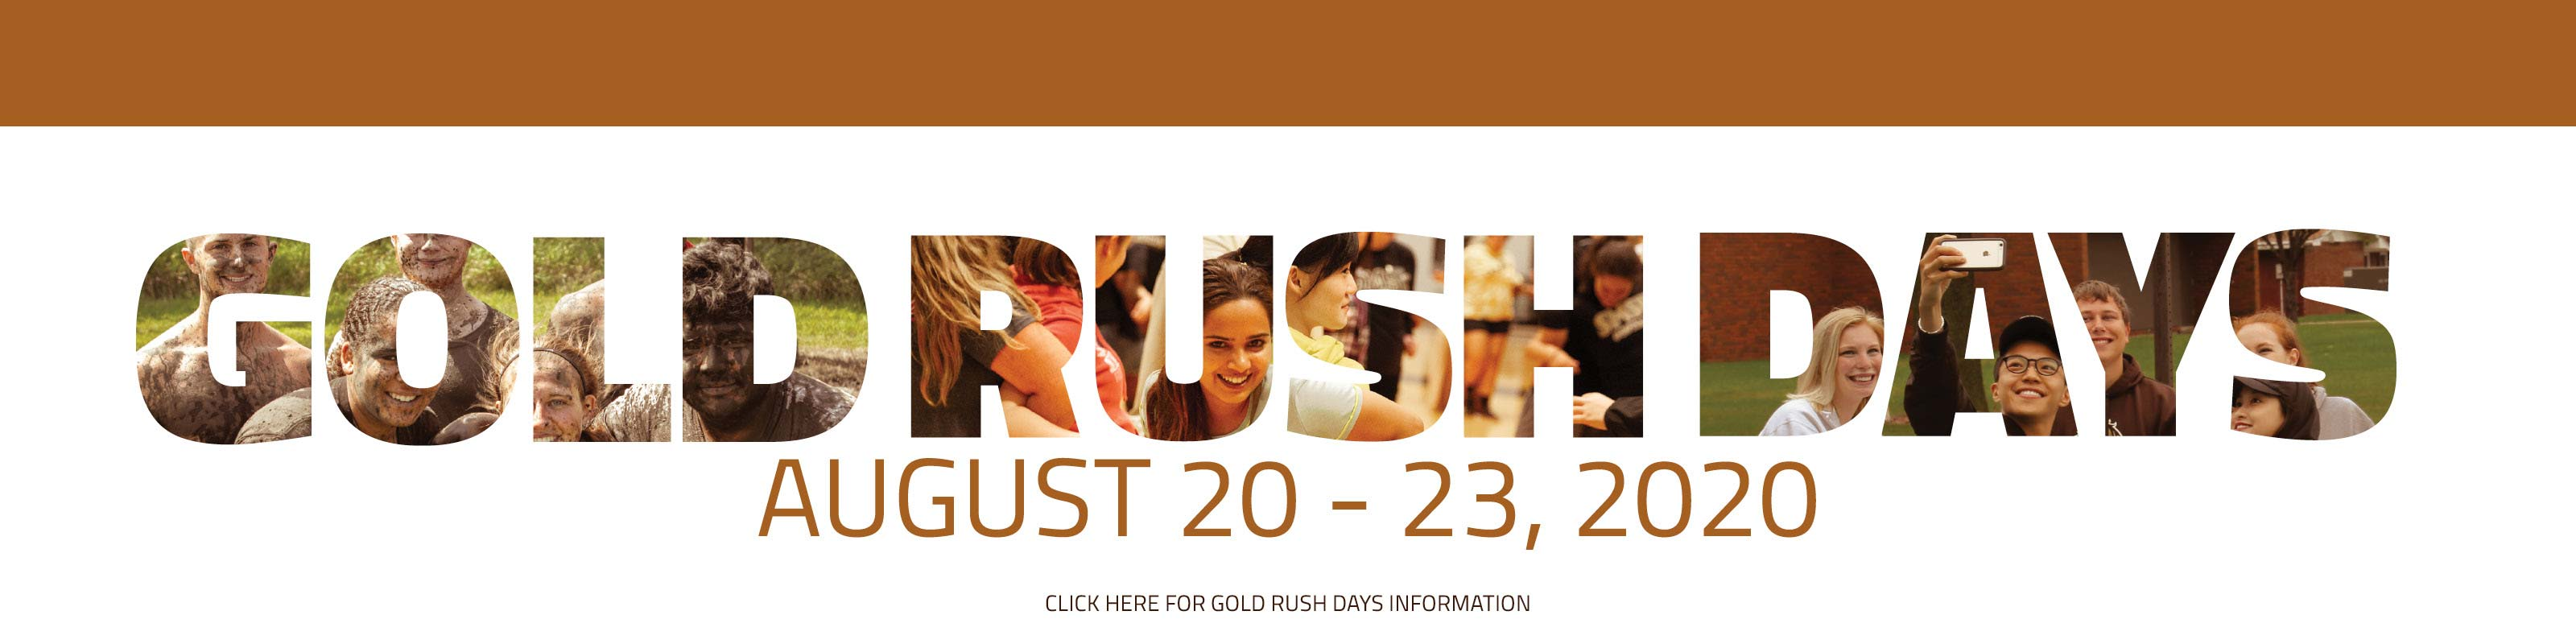 Gold Rush Days - August 20-23, 2020